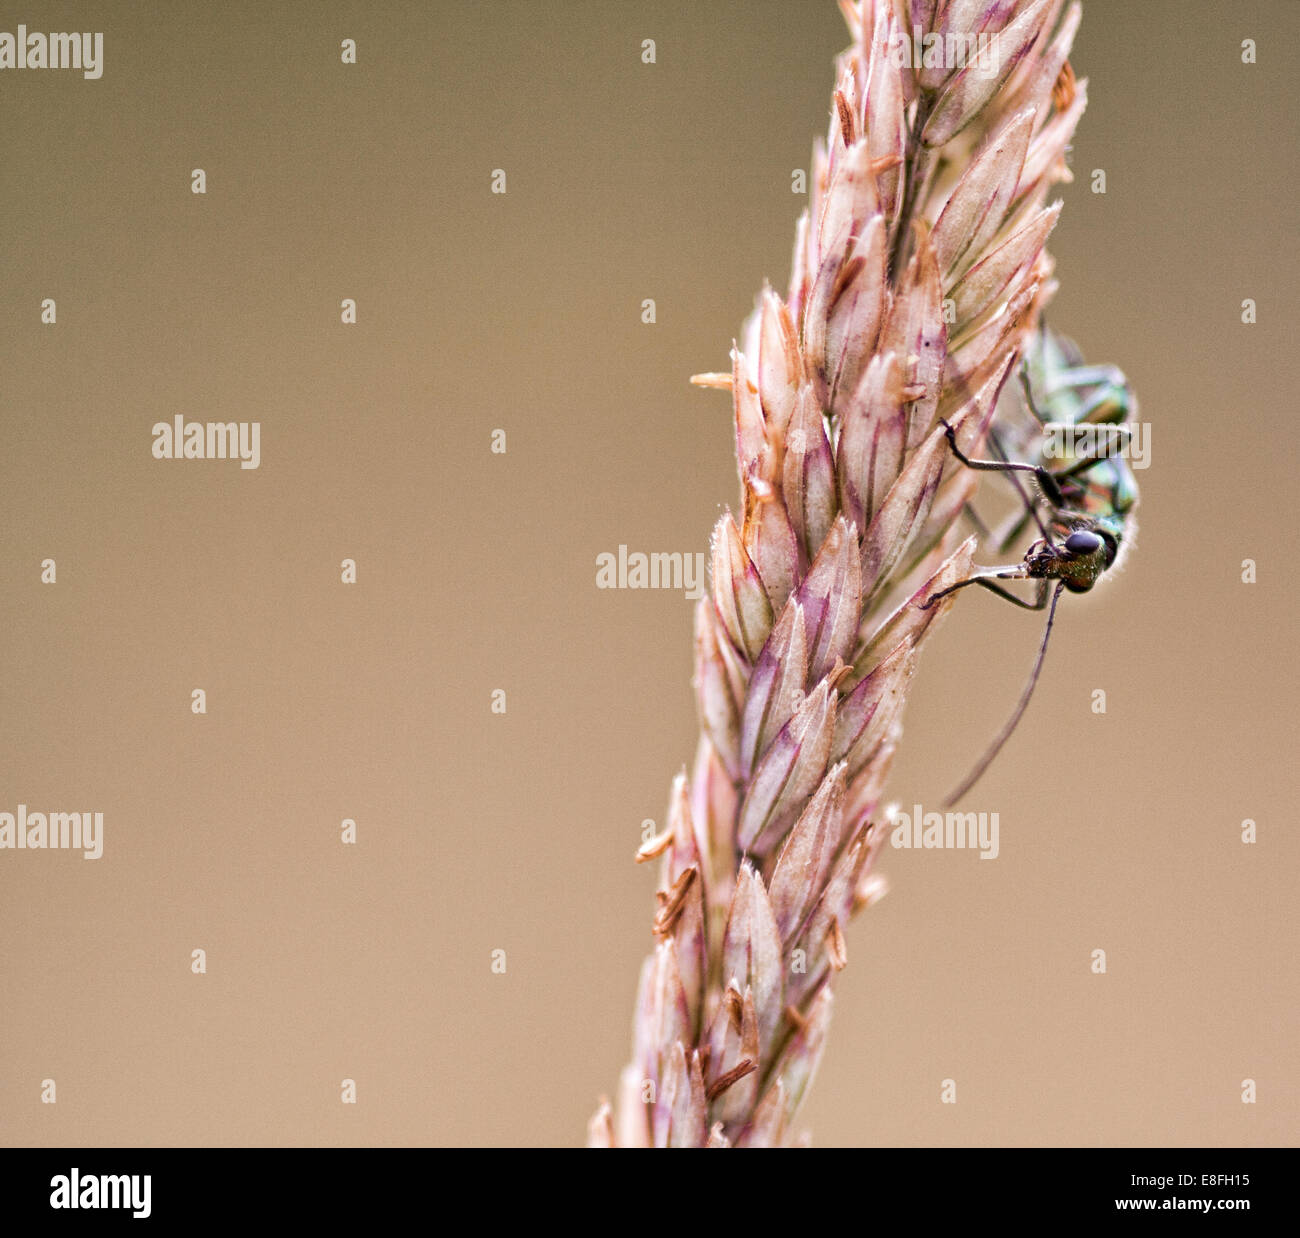 Close-up of insect sitting on plant - Stock Image